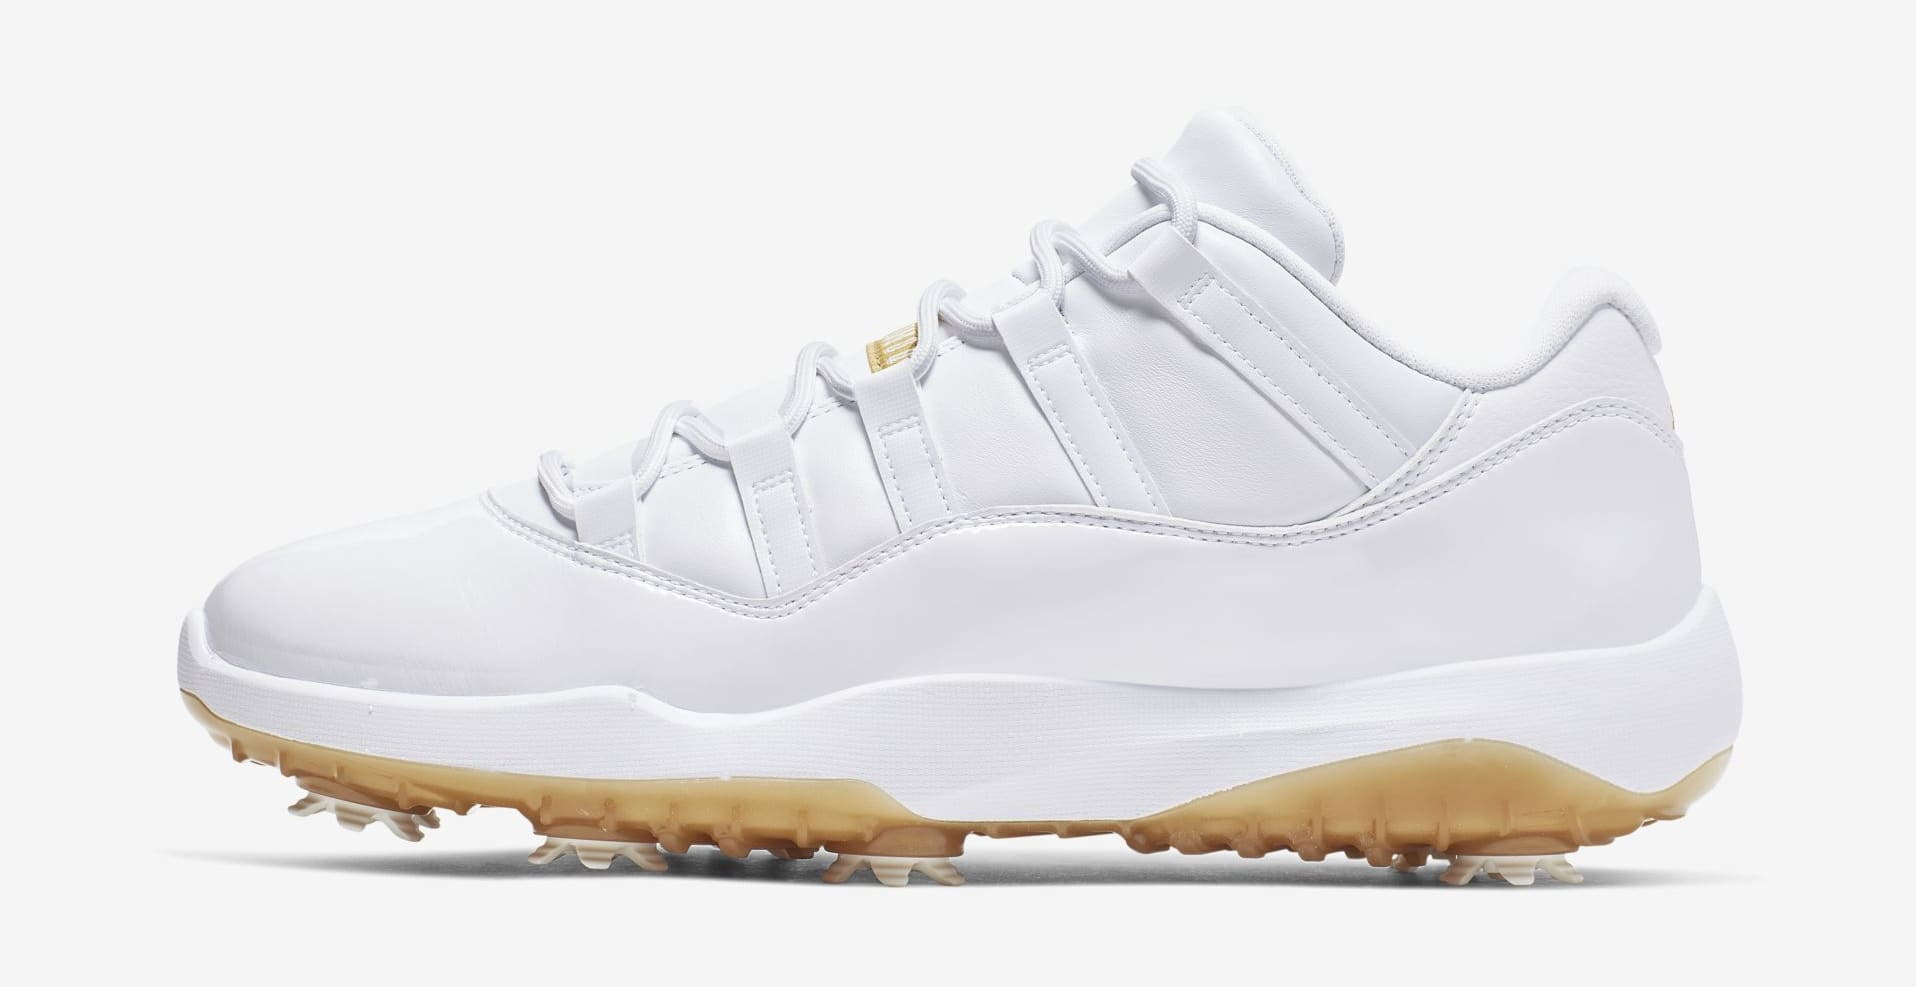 Air Jordan 11 Low Golf 'White/Metallic Gold' (Lateral)